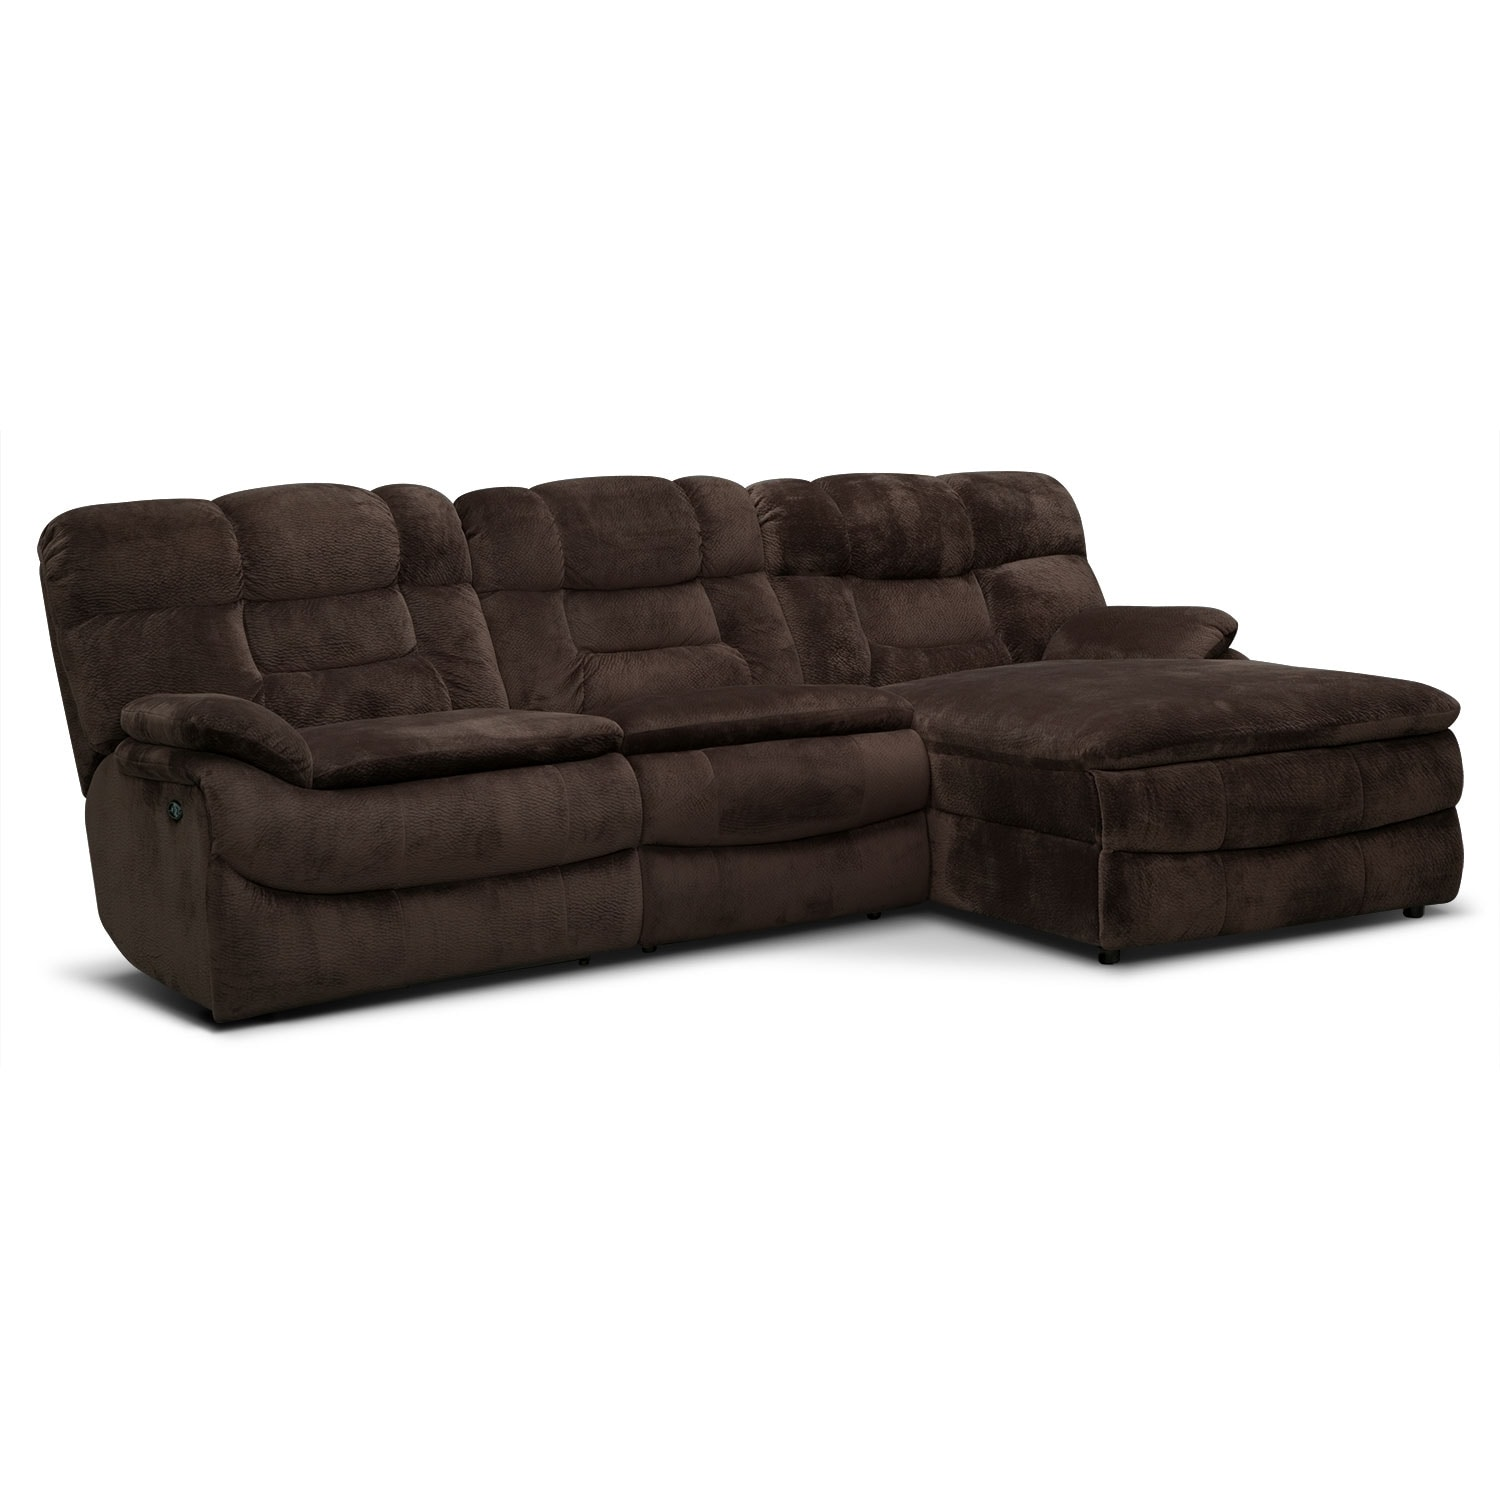 back of sofa facing fireplace designer clearance uk big softie 3 piece power reclining sectional with right